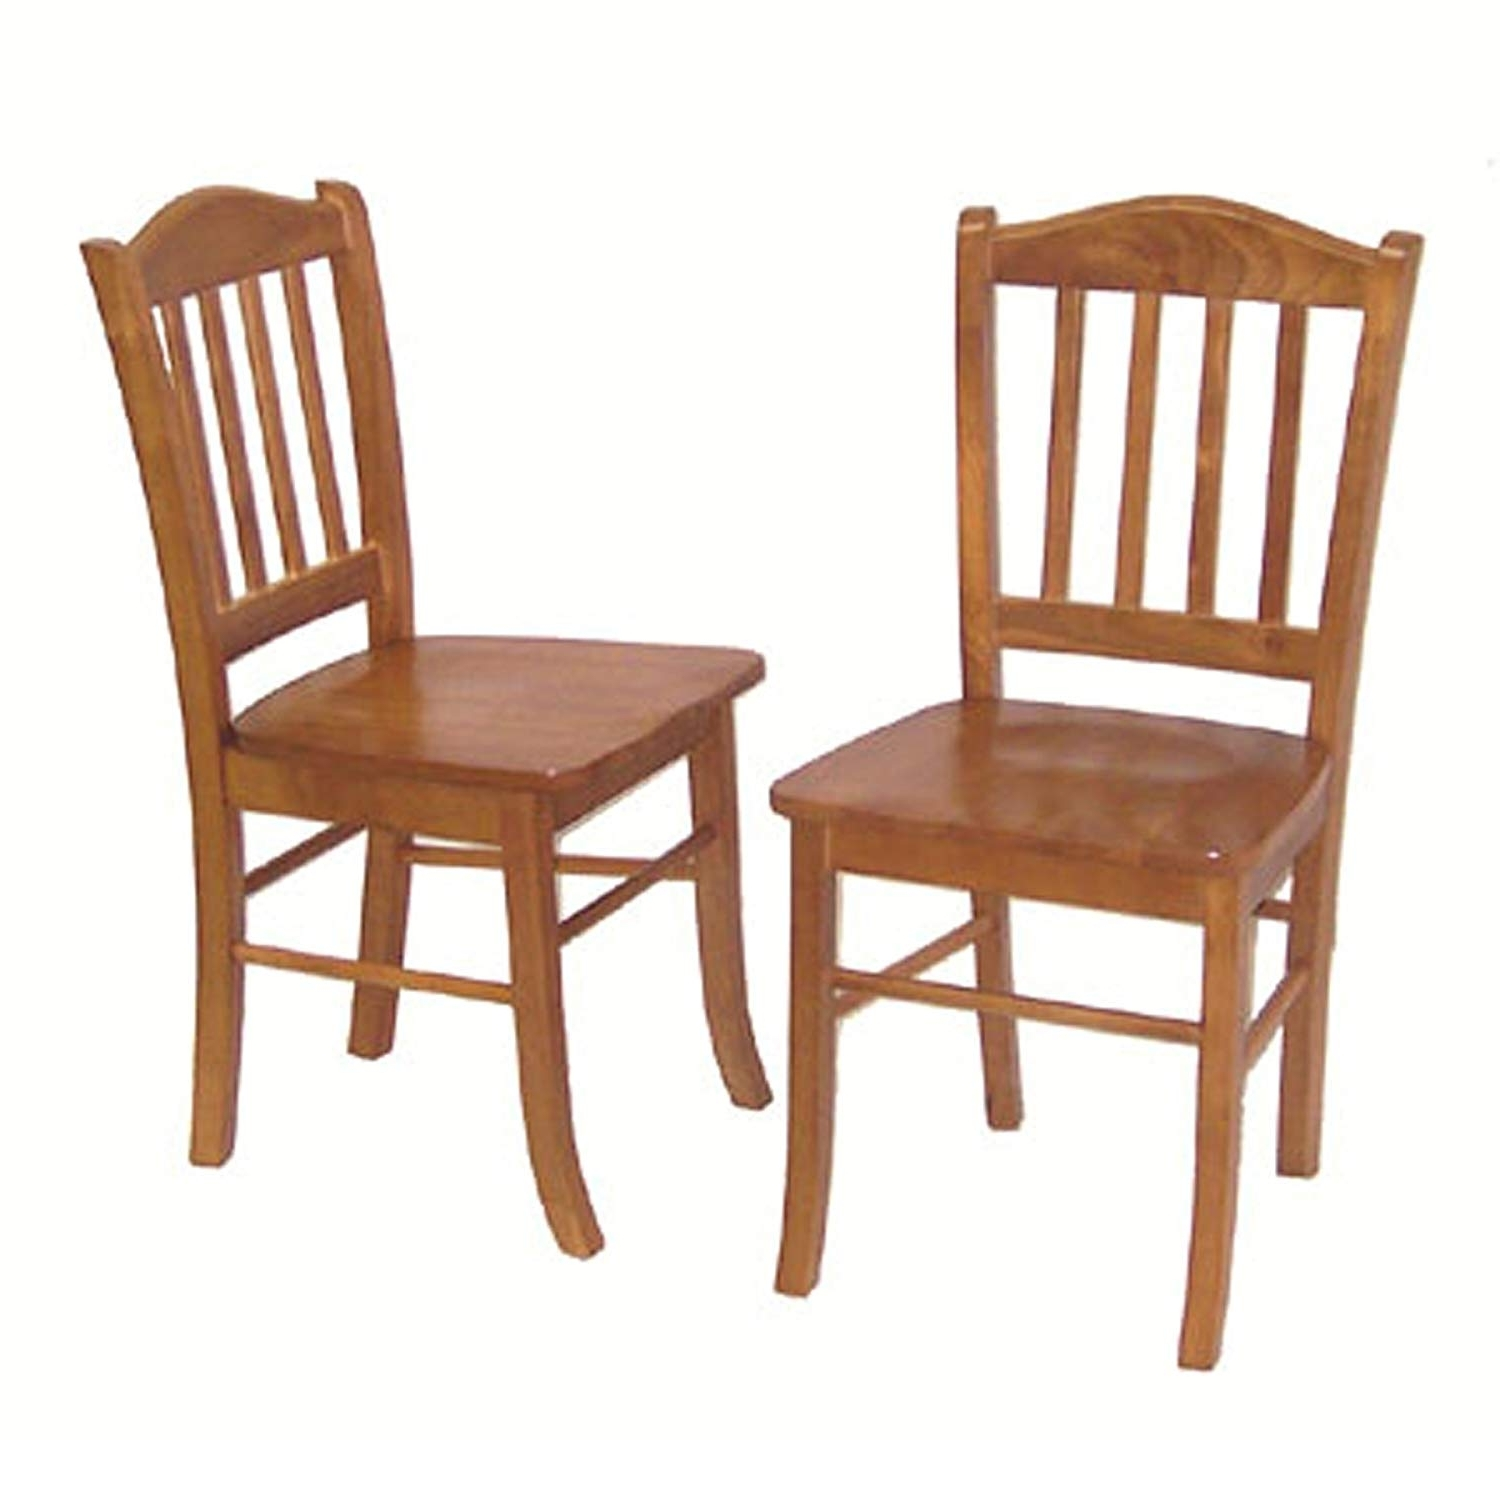 Ebay For Most Popular Ebay Dining Chairs (View 17 of 25)